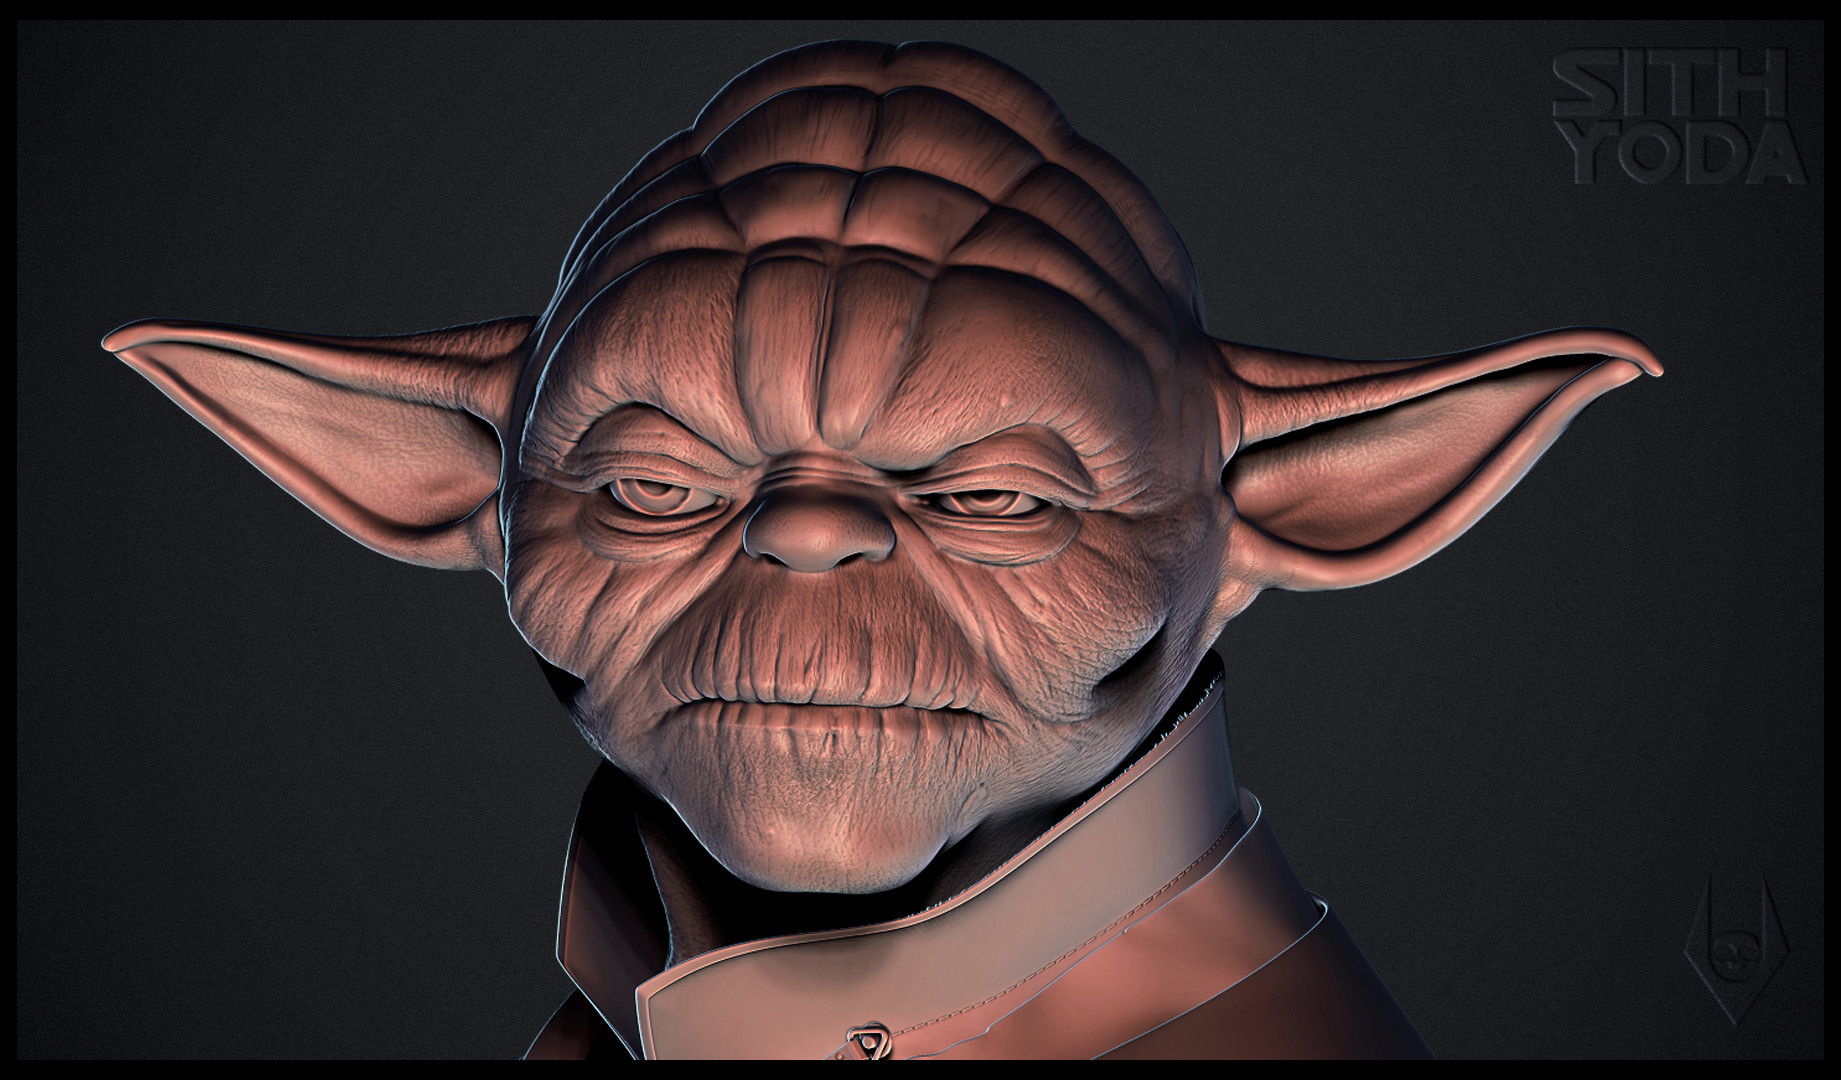 Vinicius favero yoda progress face